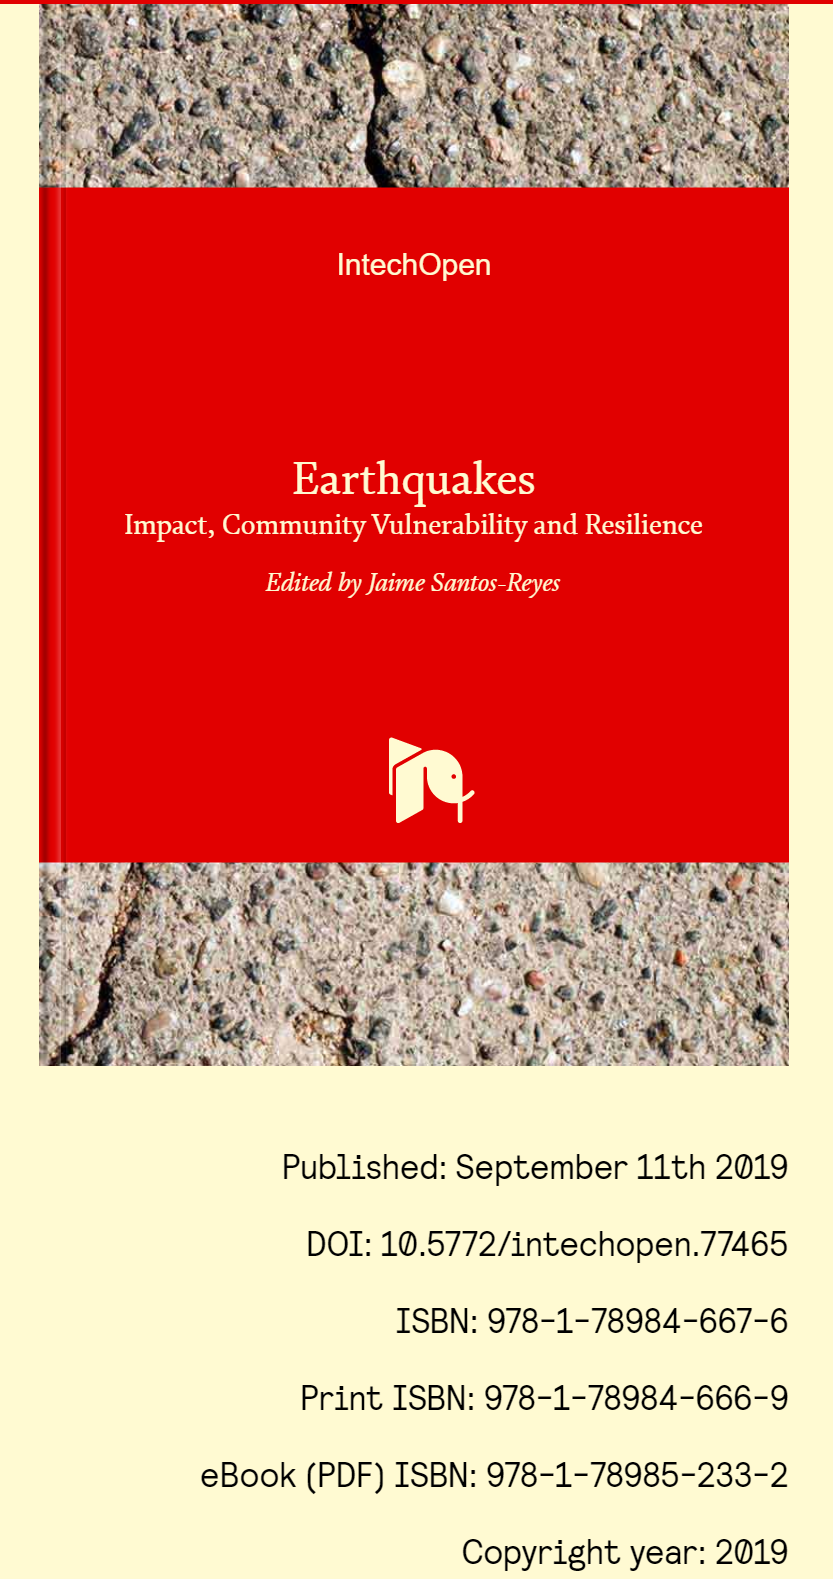 Earthquakes. Impact, Community Vulnerability and Resilience